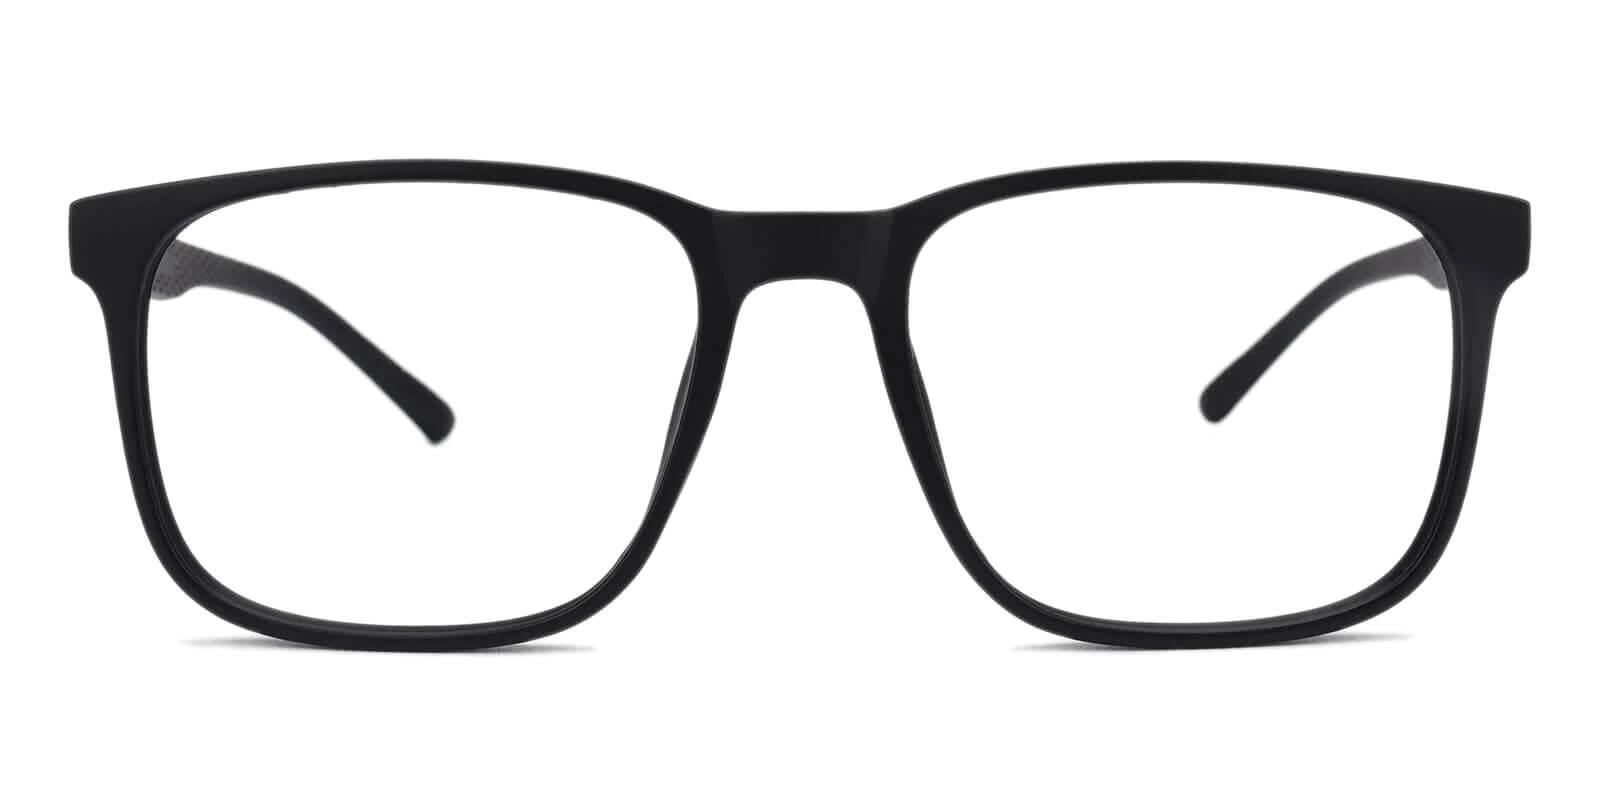 Machel Black TR Eyeglasses , UniversalBridgeFit Frames from ABBE Glasses